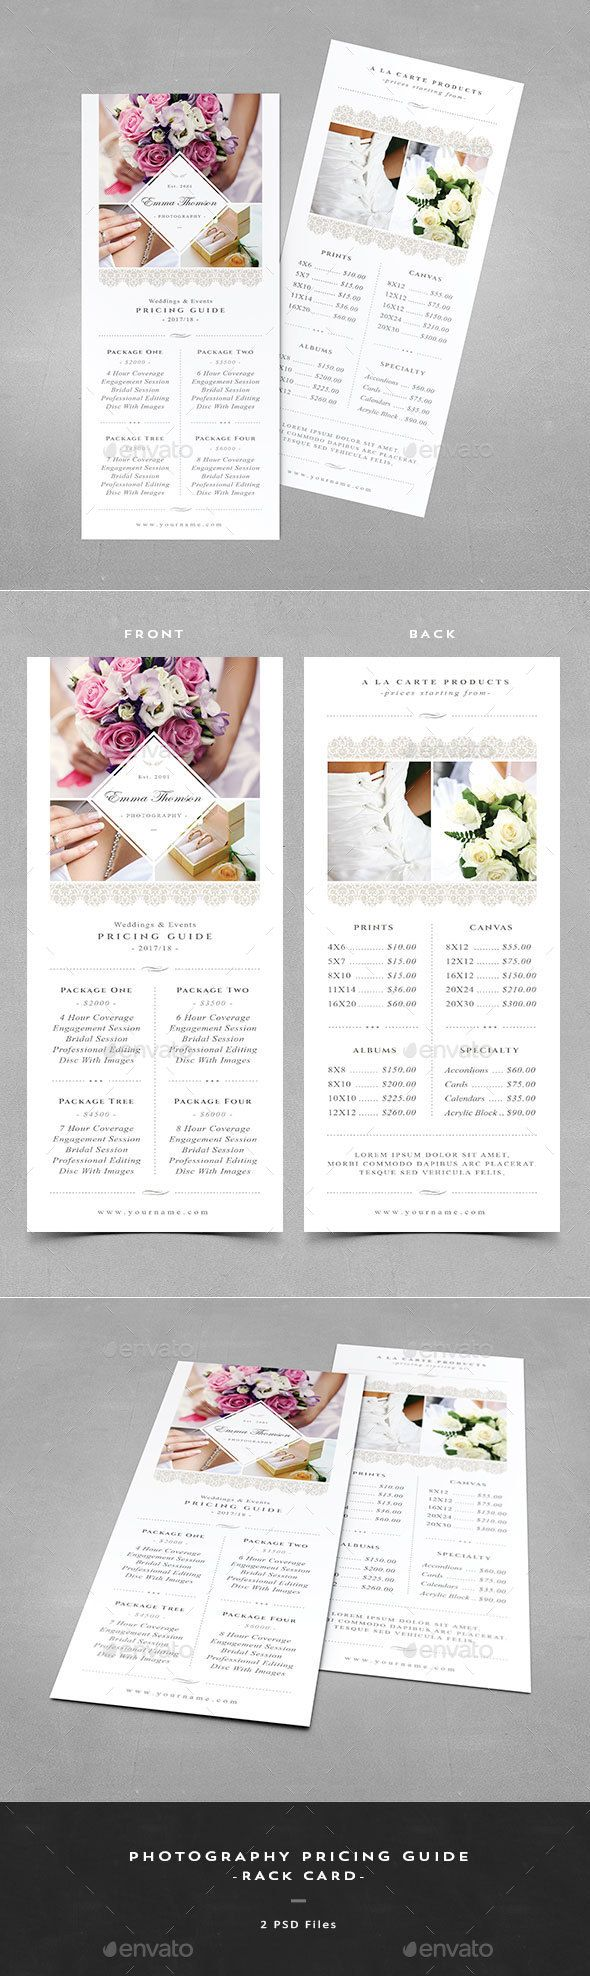 Photography Pricing Guide - Rack Card - Corporate Flyers